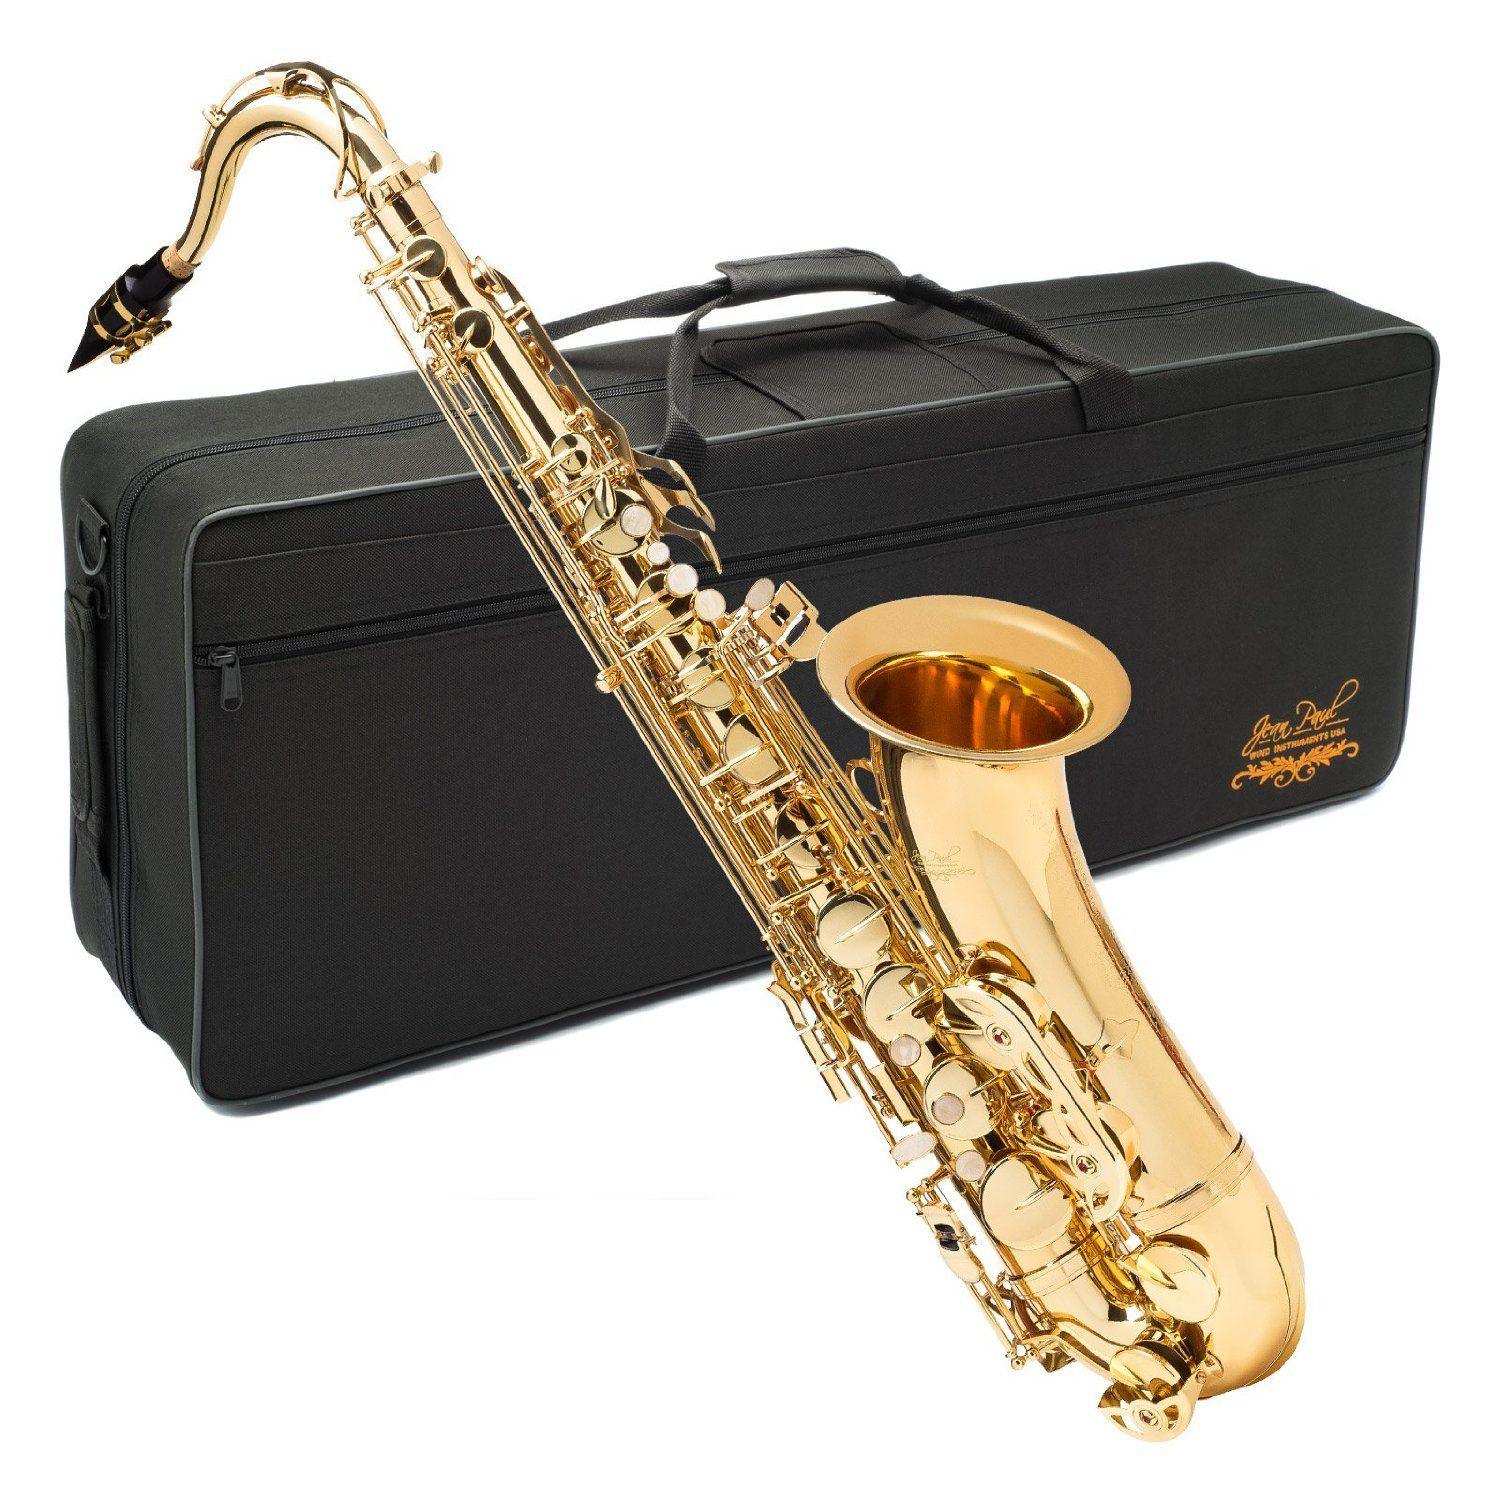 Jean Paul USA TS-400 Tenor Saxophone - Key Of Bb With Brass Body And Case - Beginning & Intermediate!